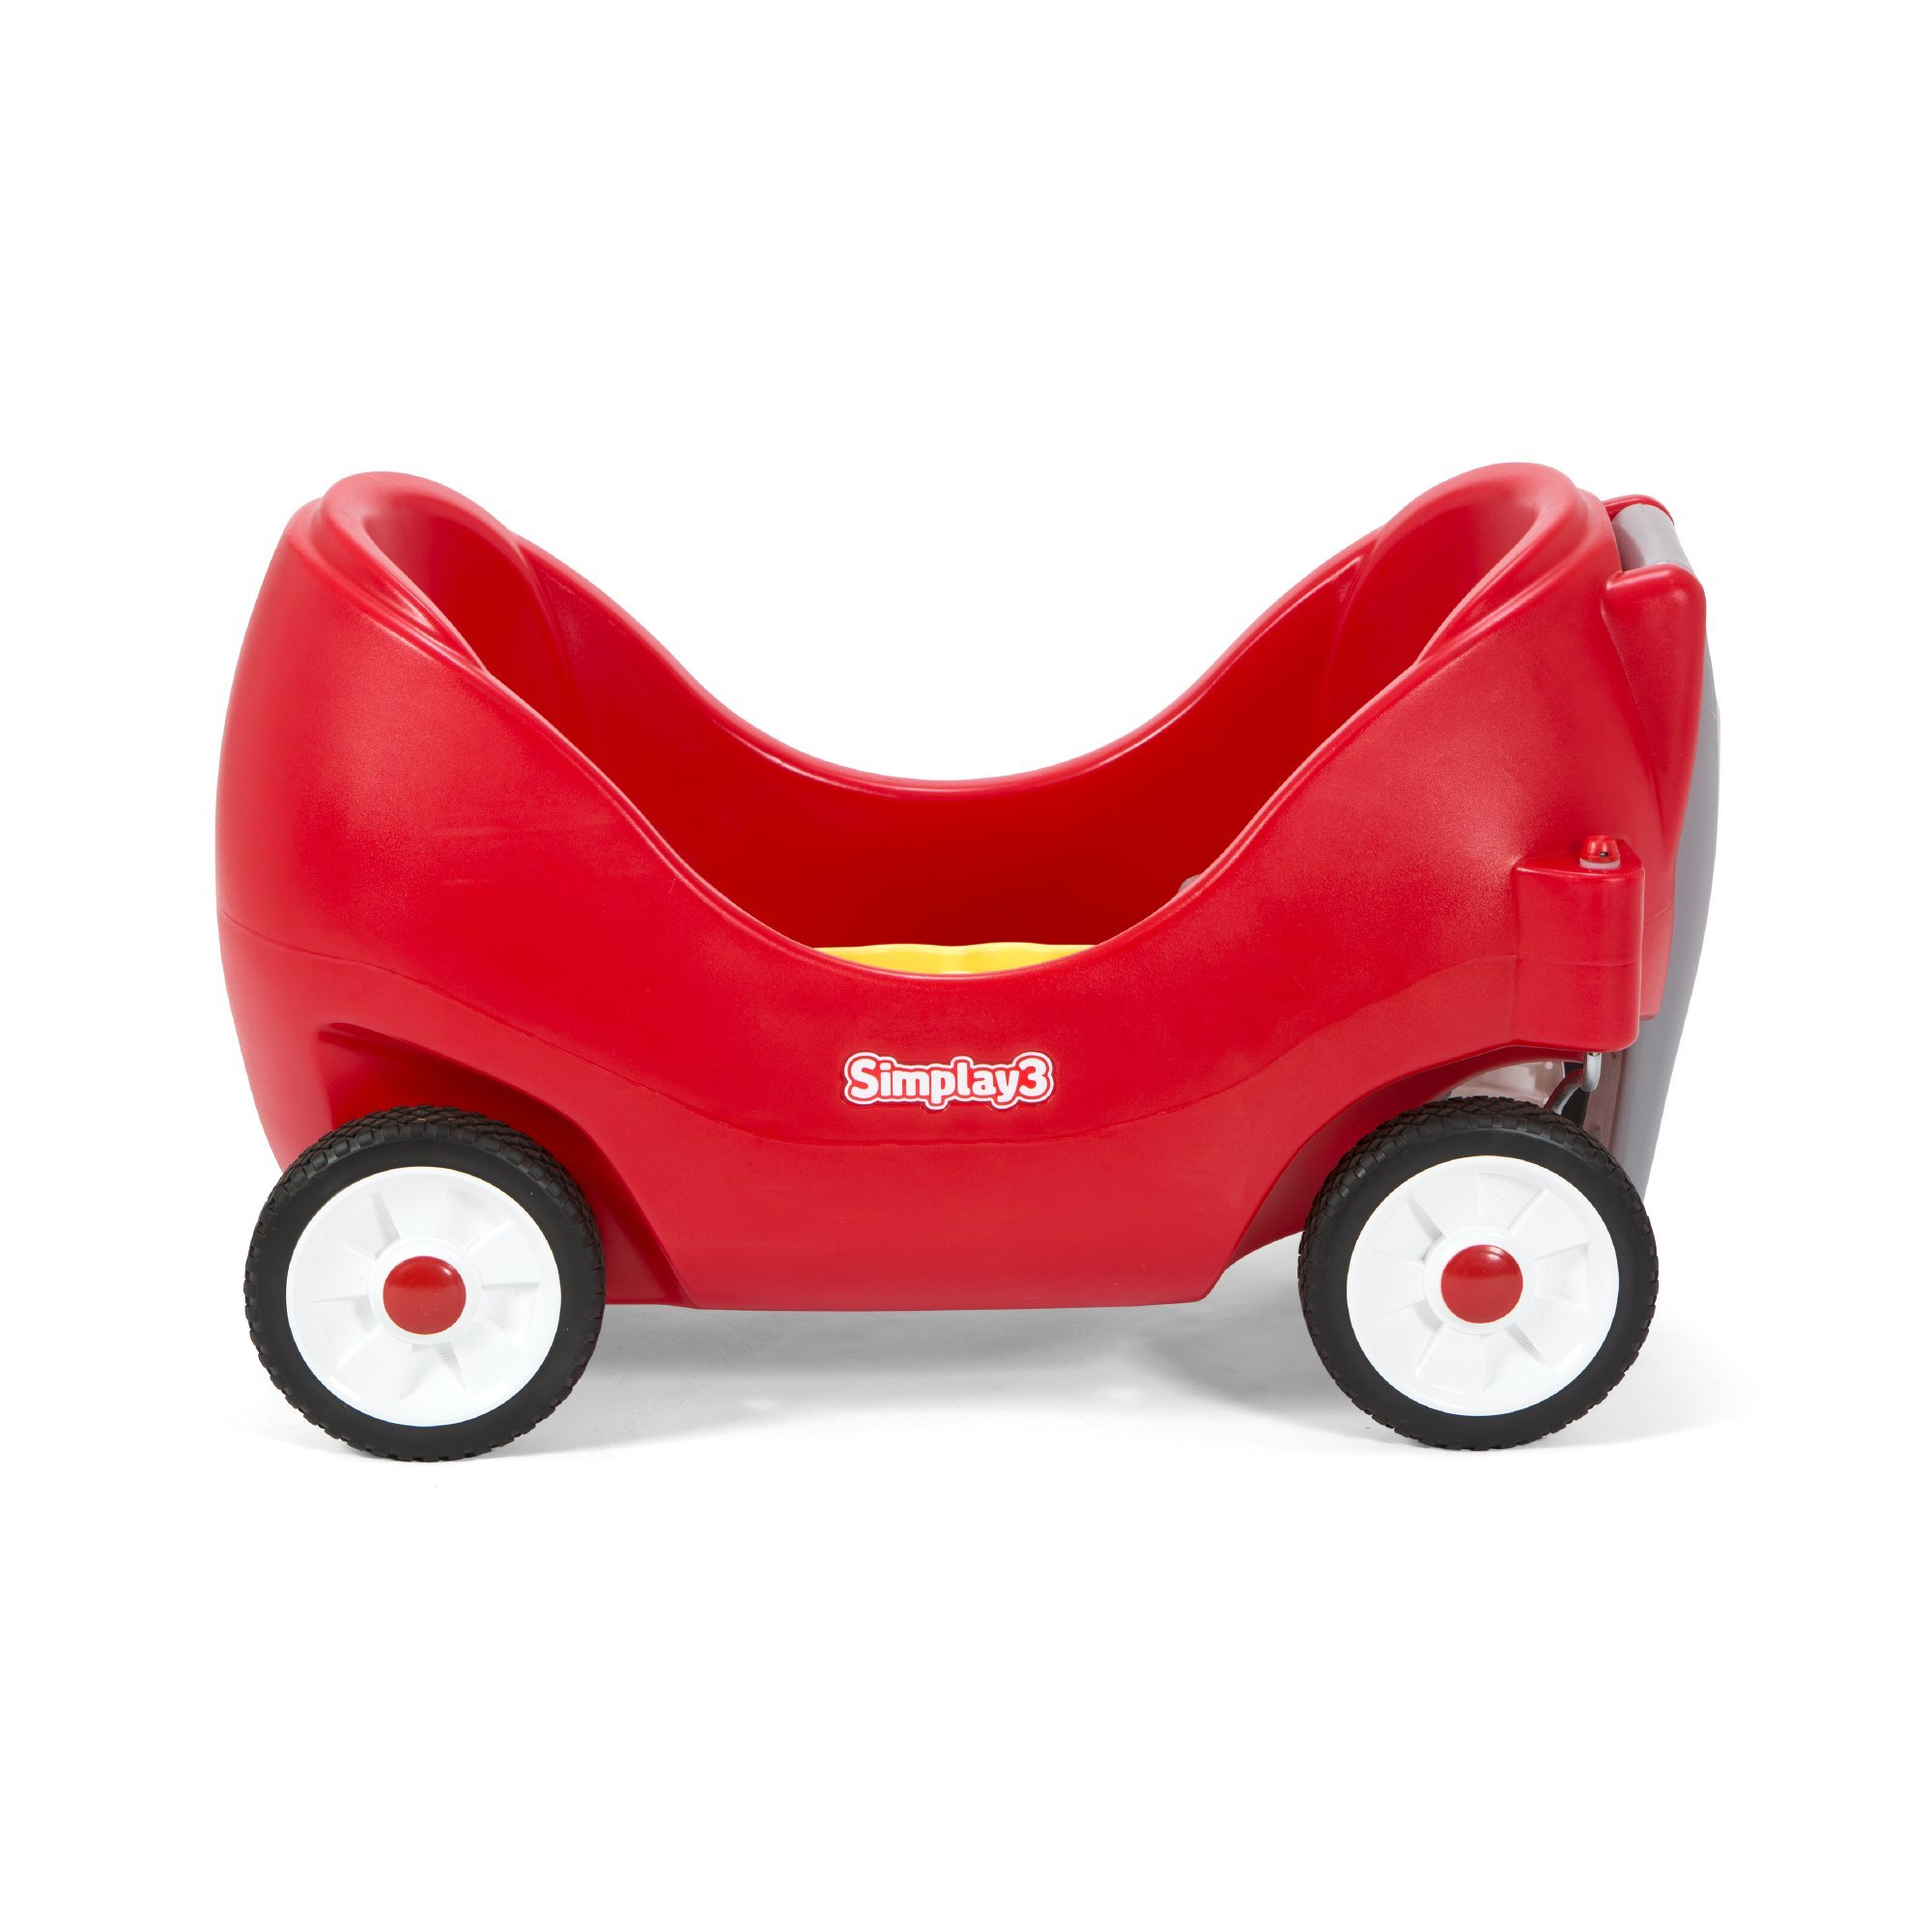 Simplay3 Toddler Wagon with Two High Back Seats, Cupholders, and Seatbelts - Red